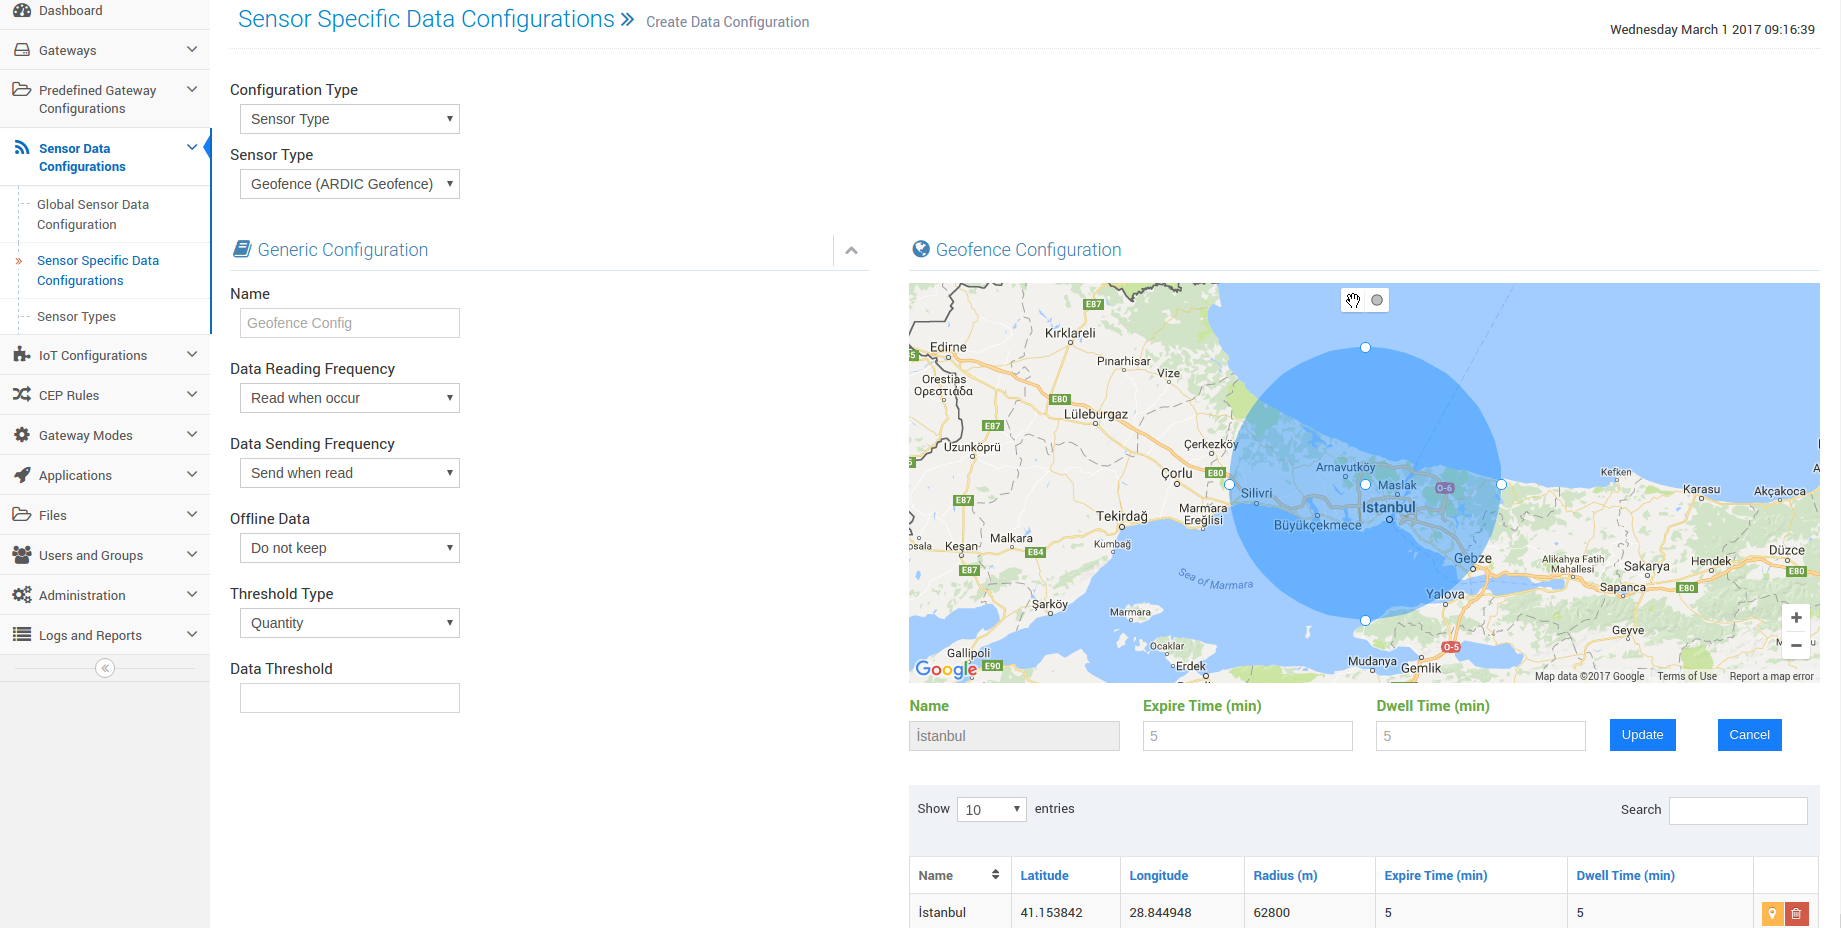 Sensor Data Configurations: Geofence Config